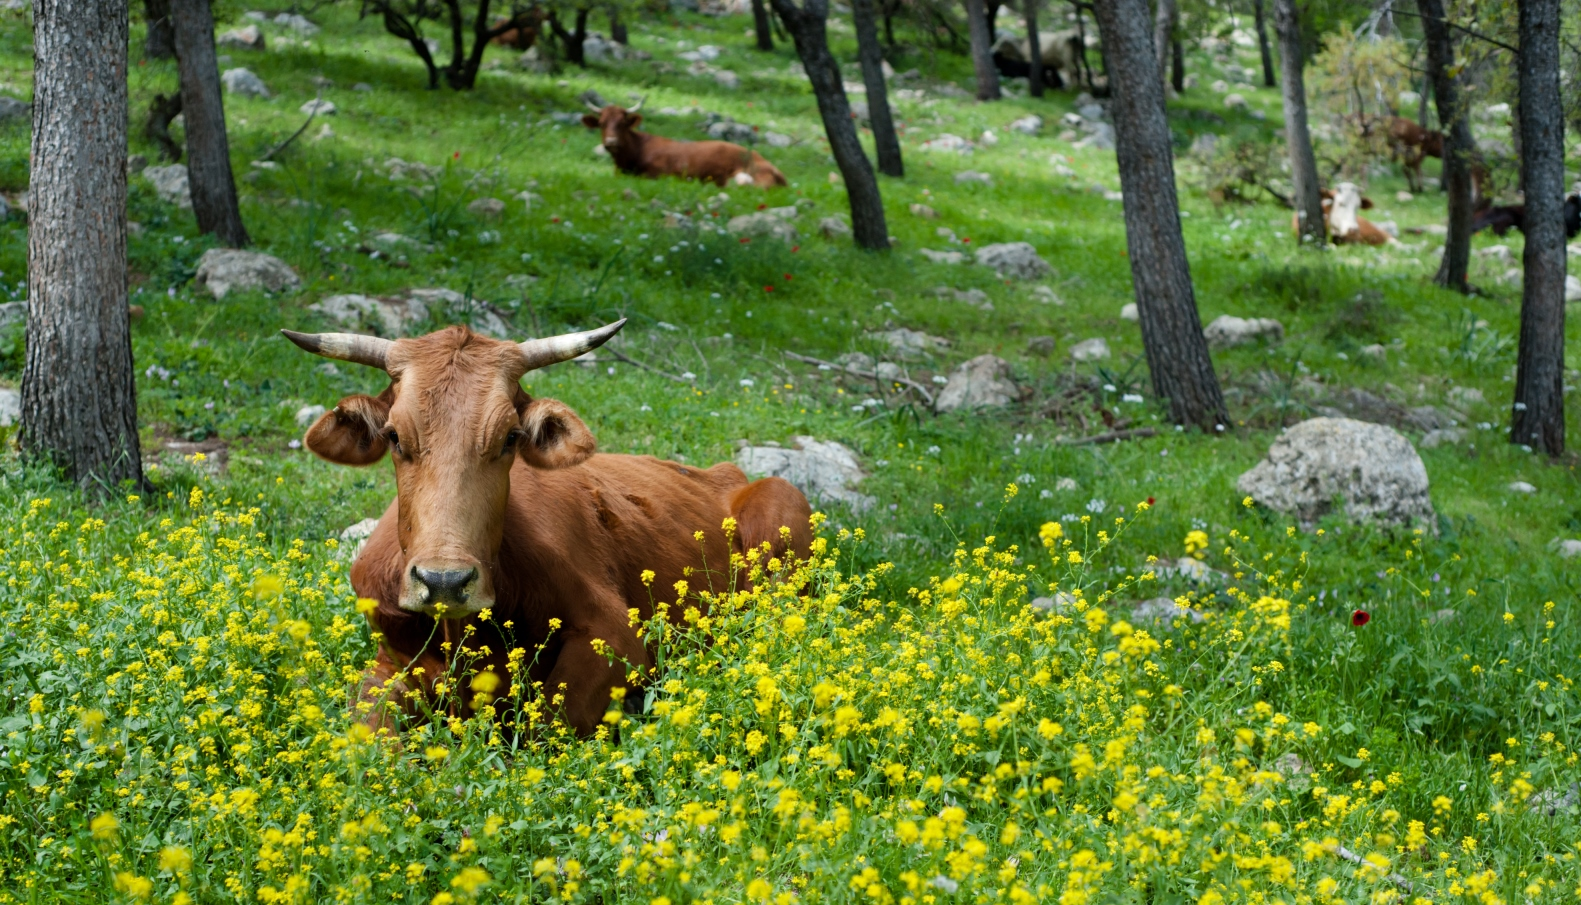 Cows grazing on Mount Tabor. Photo by Ryan Rodrick Beiler/Shutterstock.com